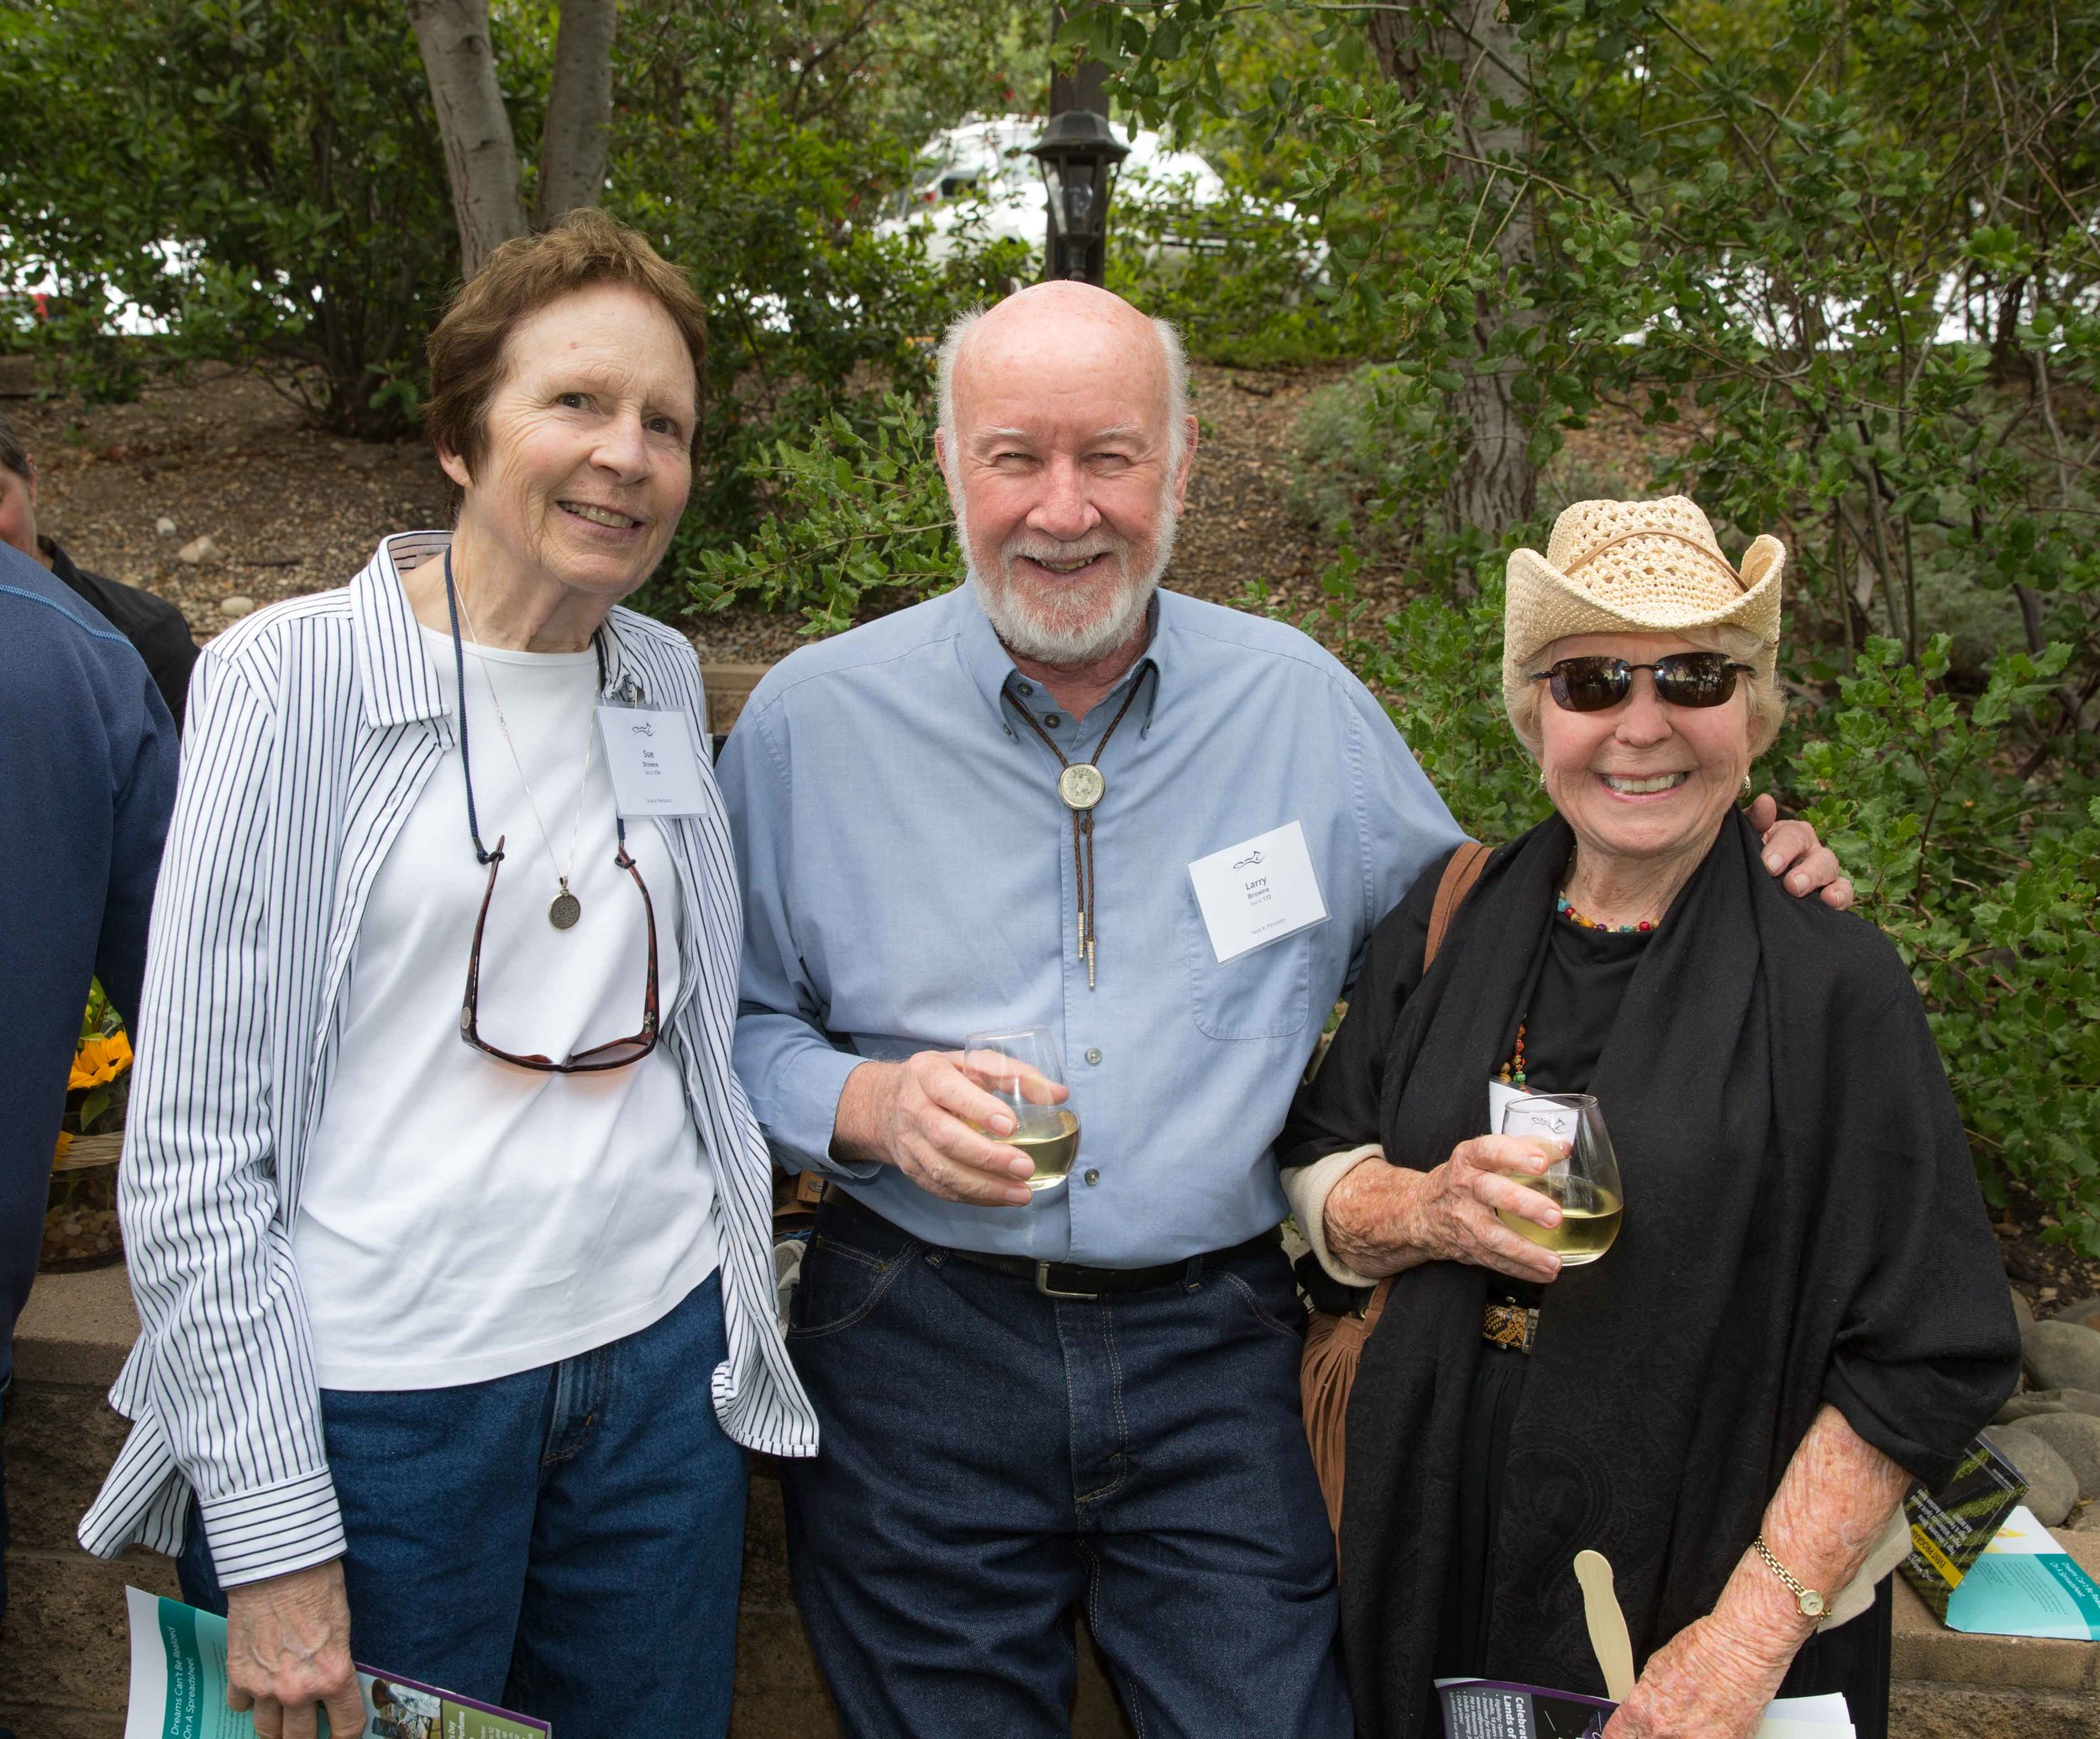 Sue and Larry Browne, with June Sochel, Board Member